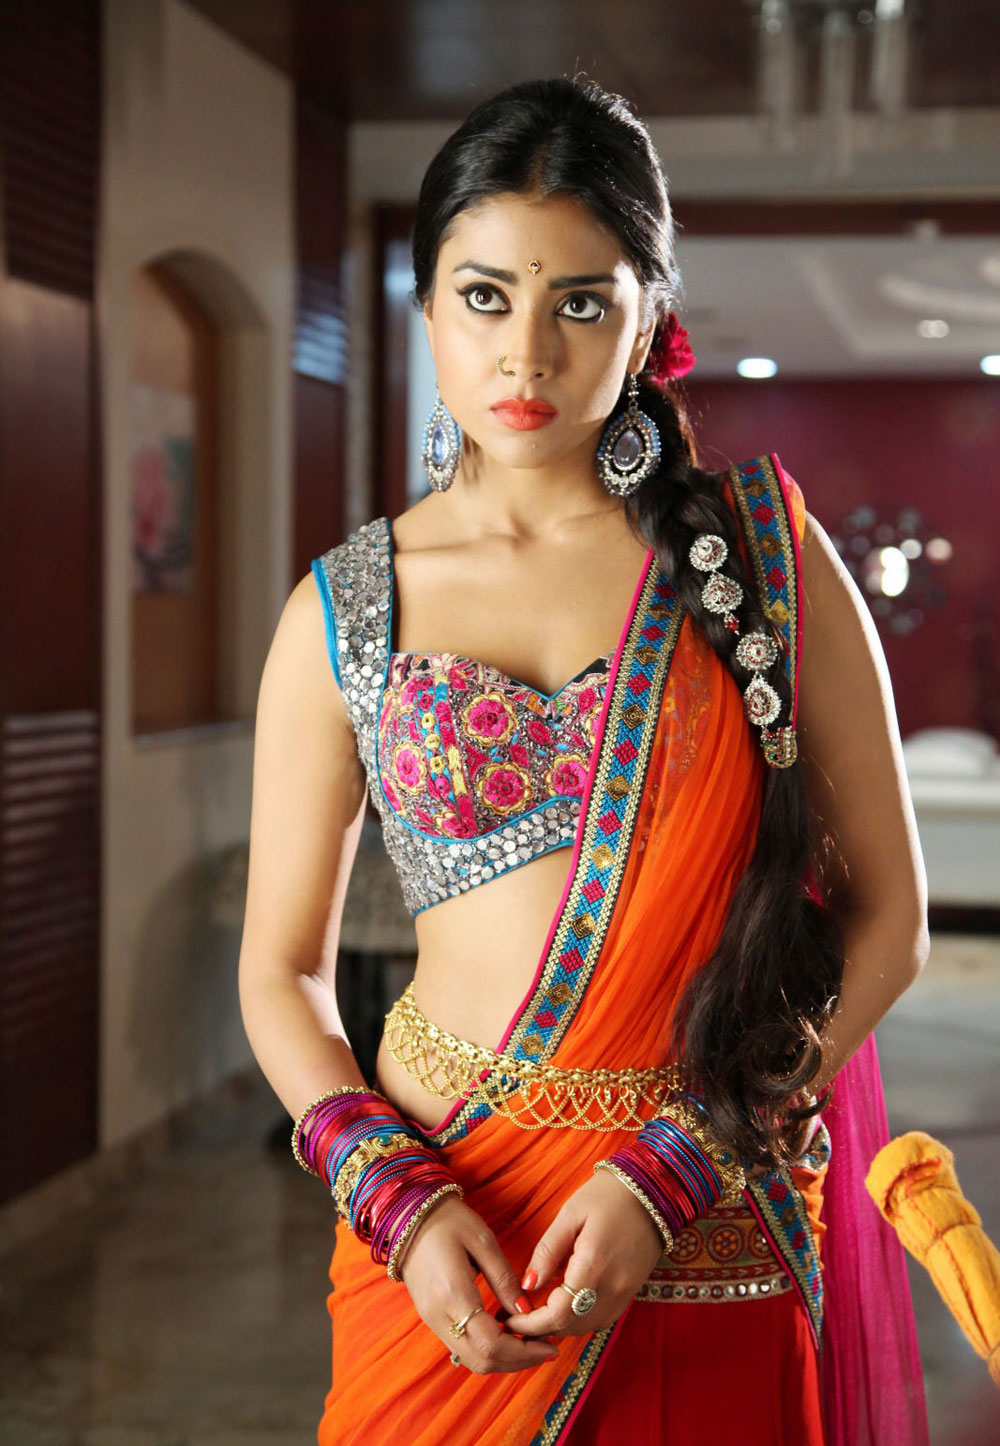 shriya saran hot fucking and naked pics